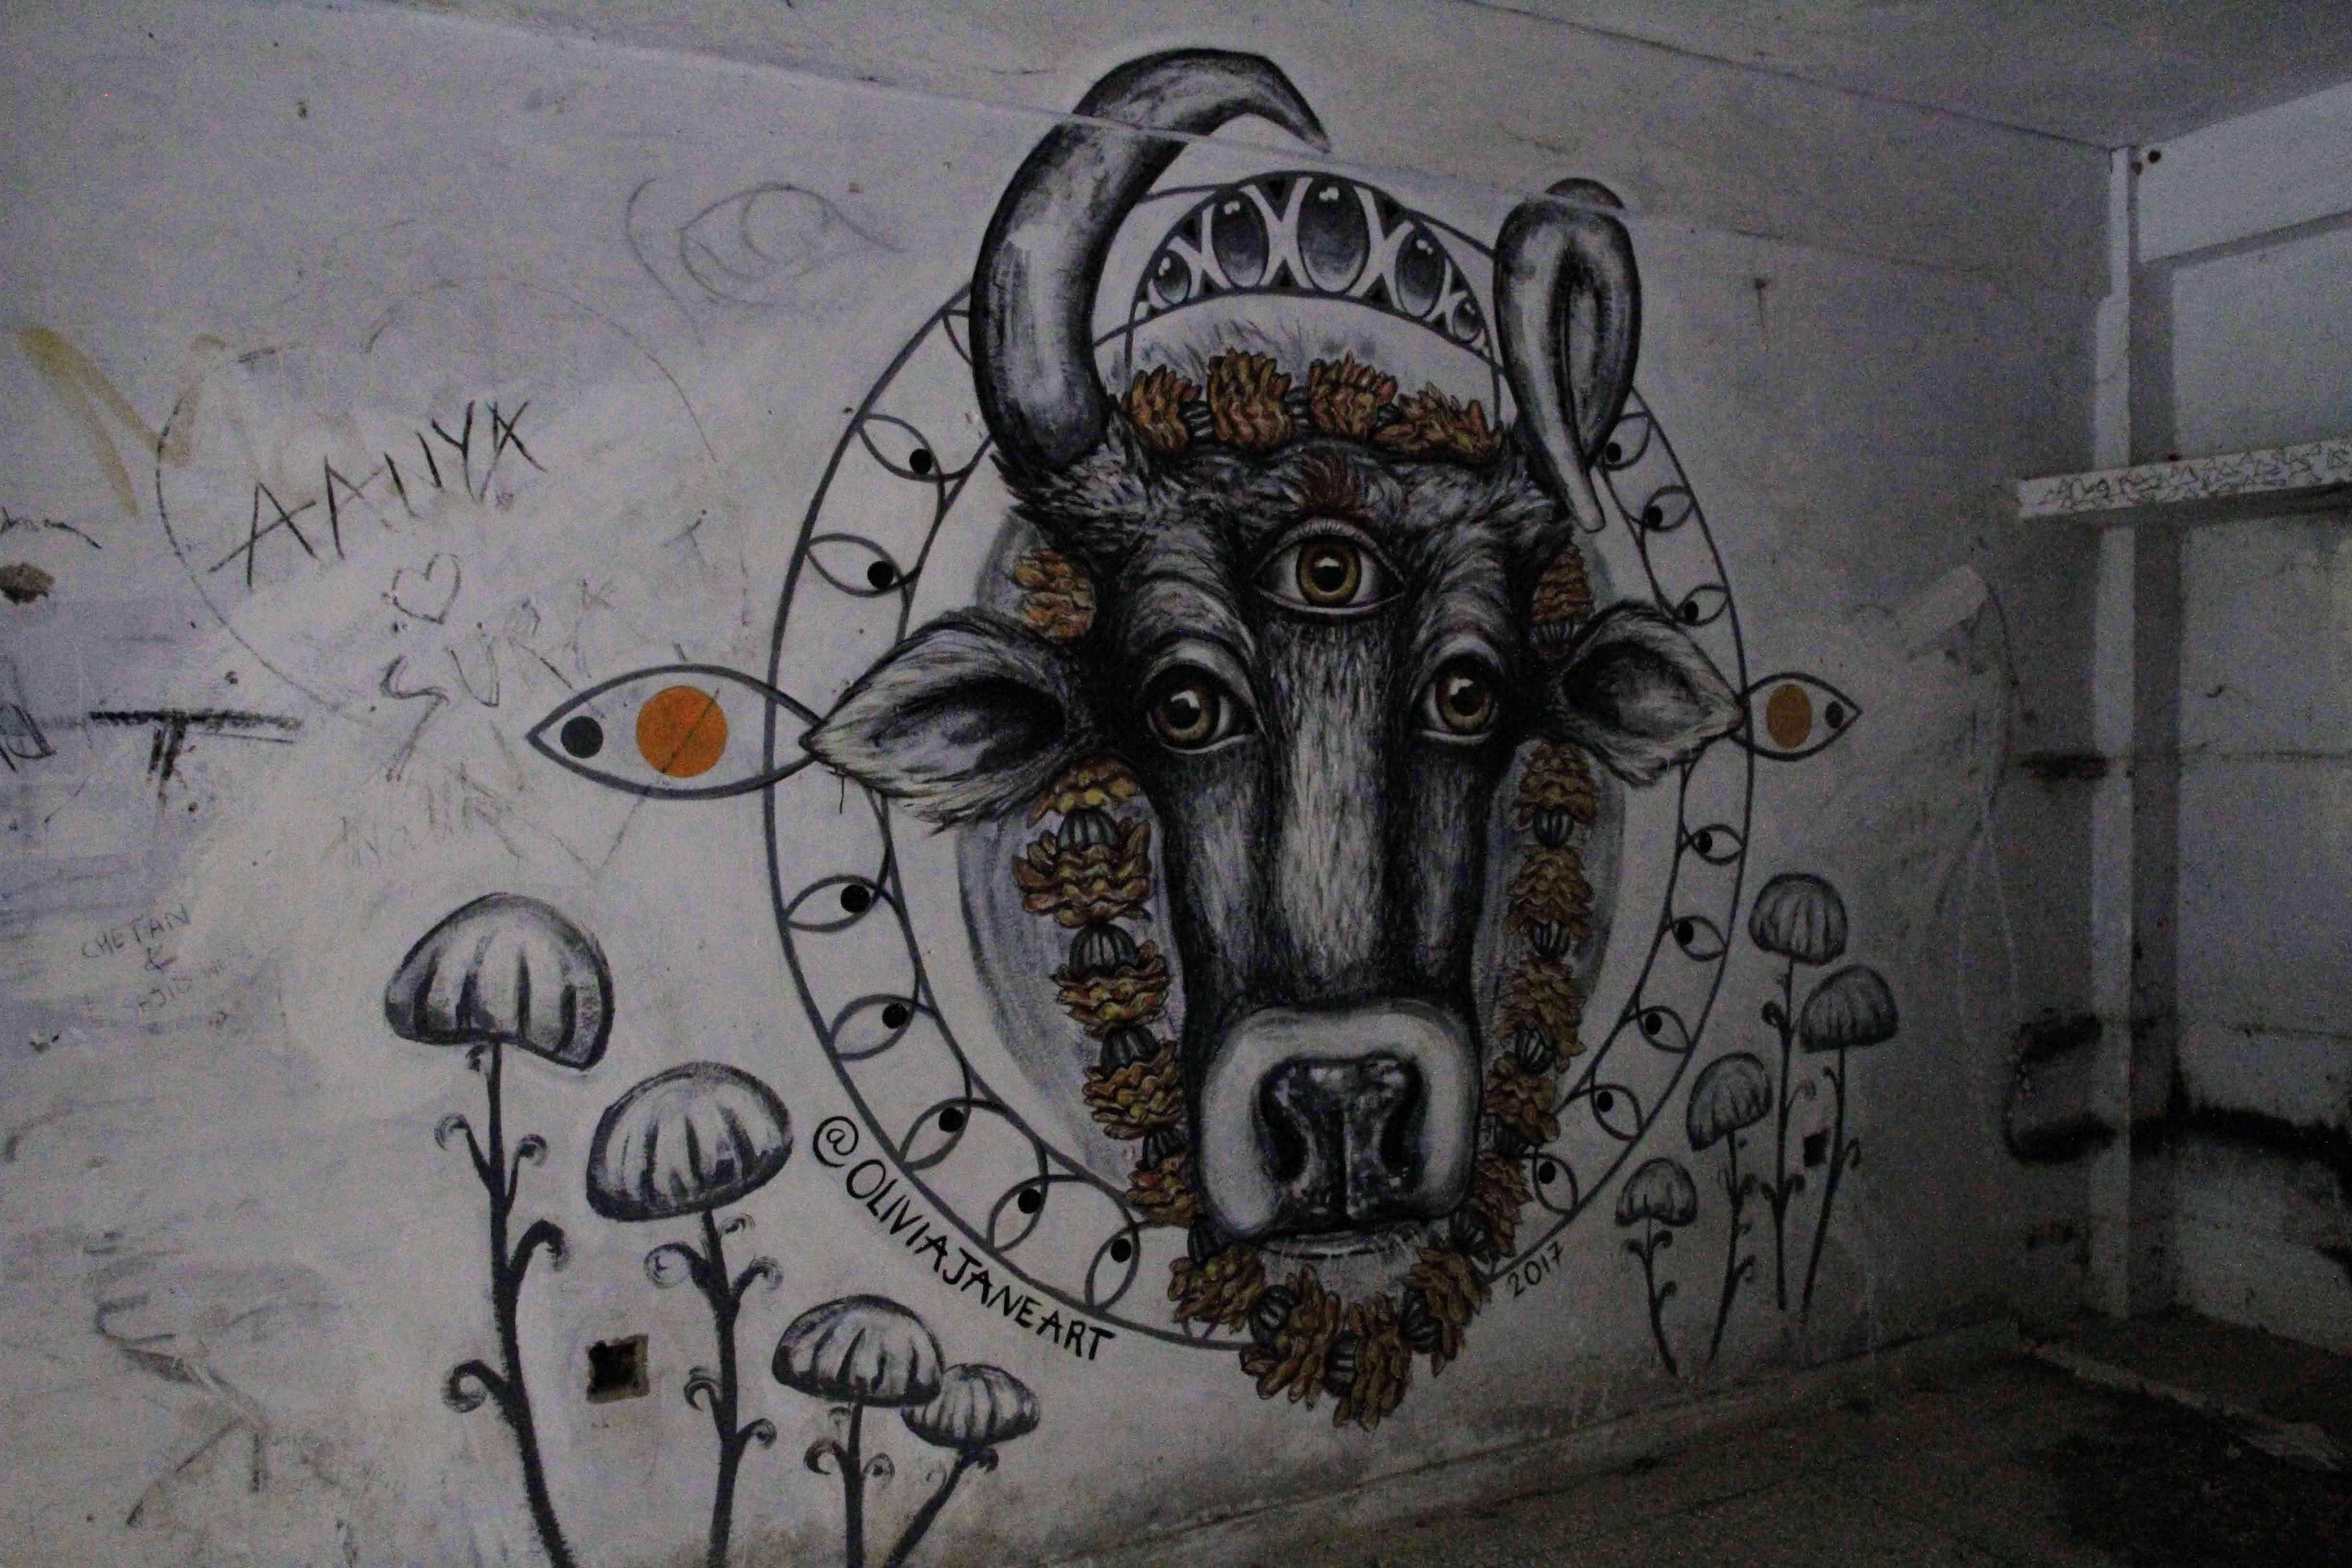 Cow graffiti in the flats, The Beatles Ashram, Rishikesh